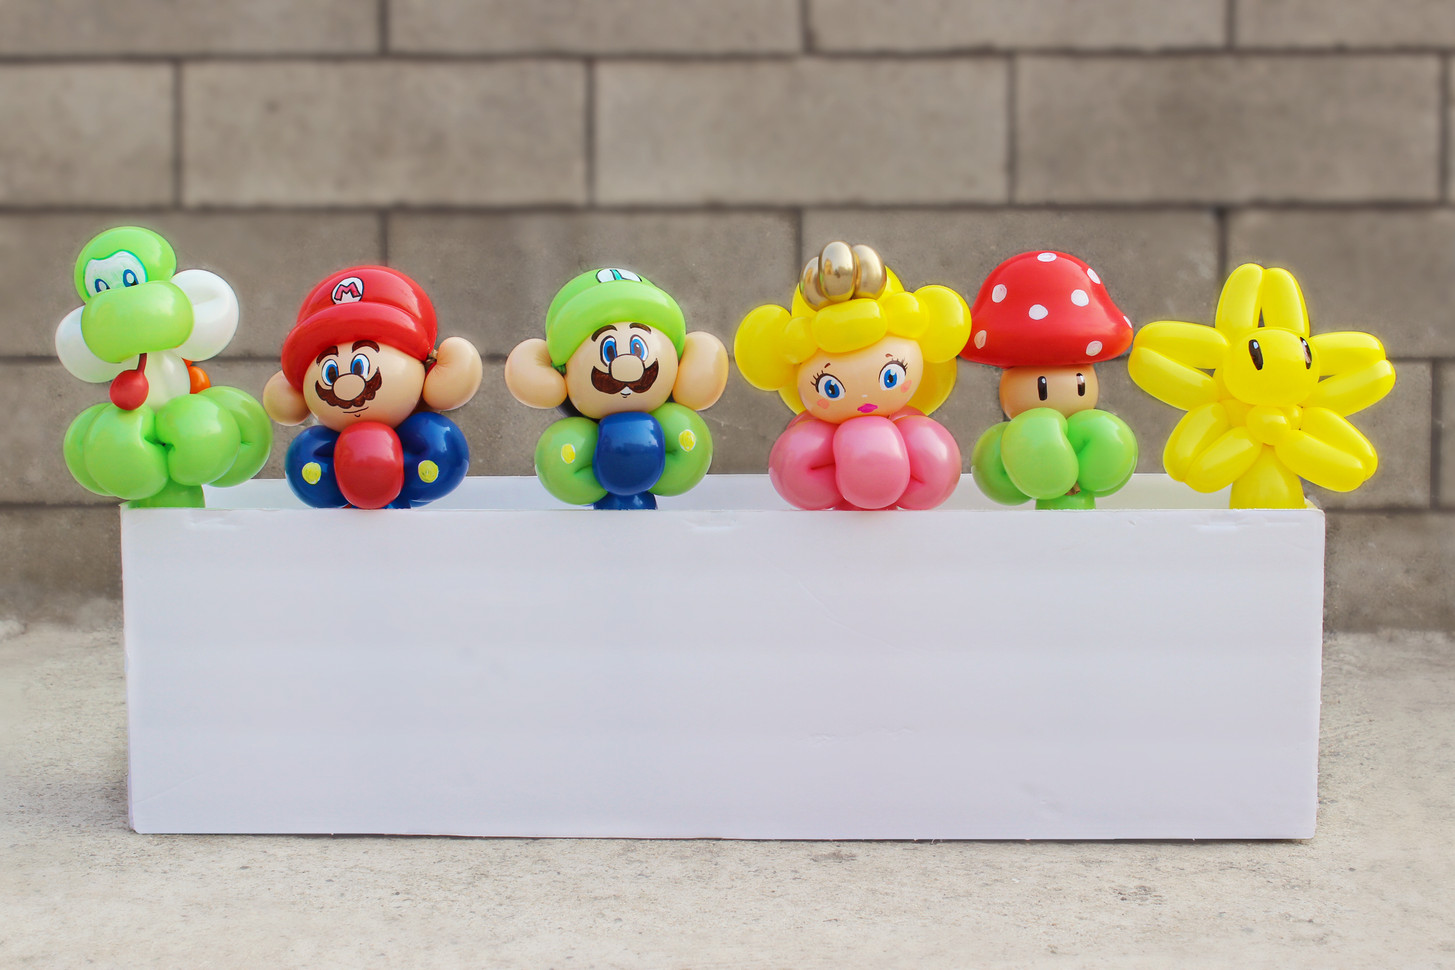 Mario & Friends Buddies